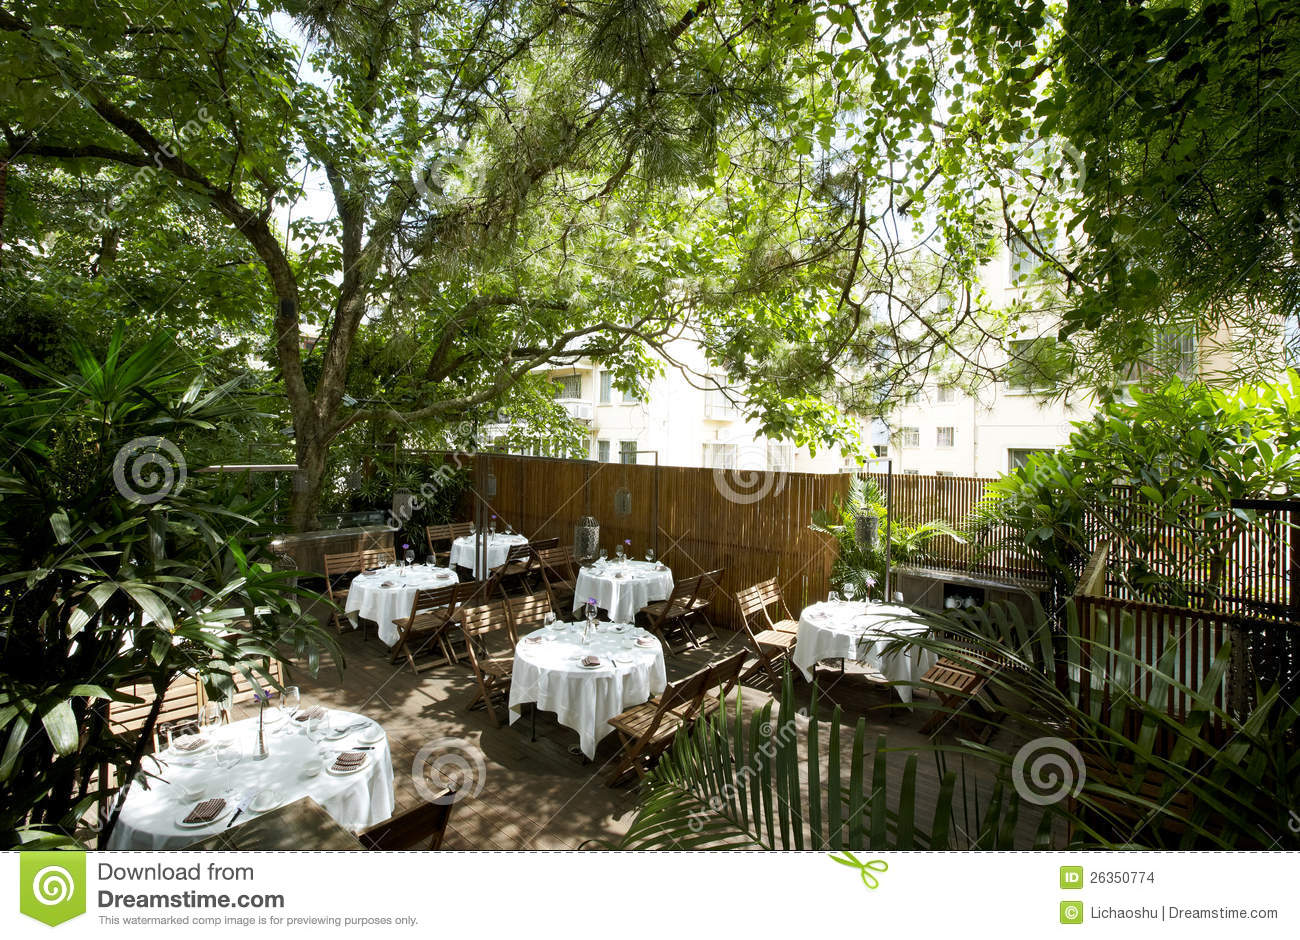 desk chair modern kitchen back covers the beautiful garden restaurant stock photo - image: 26350774